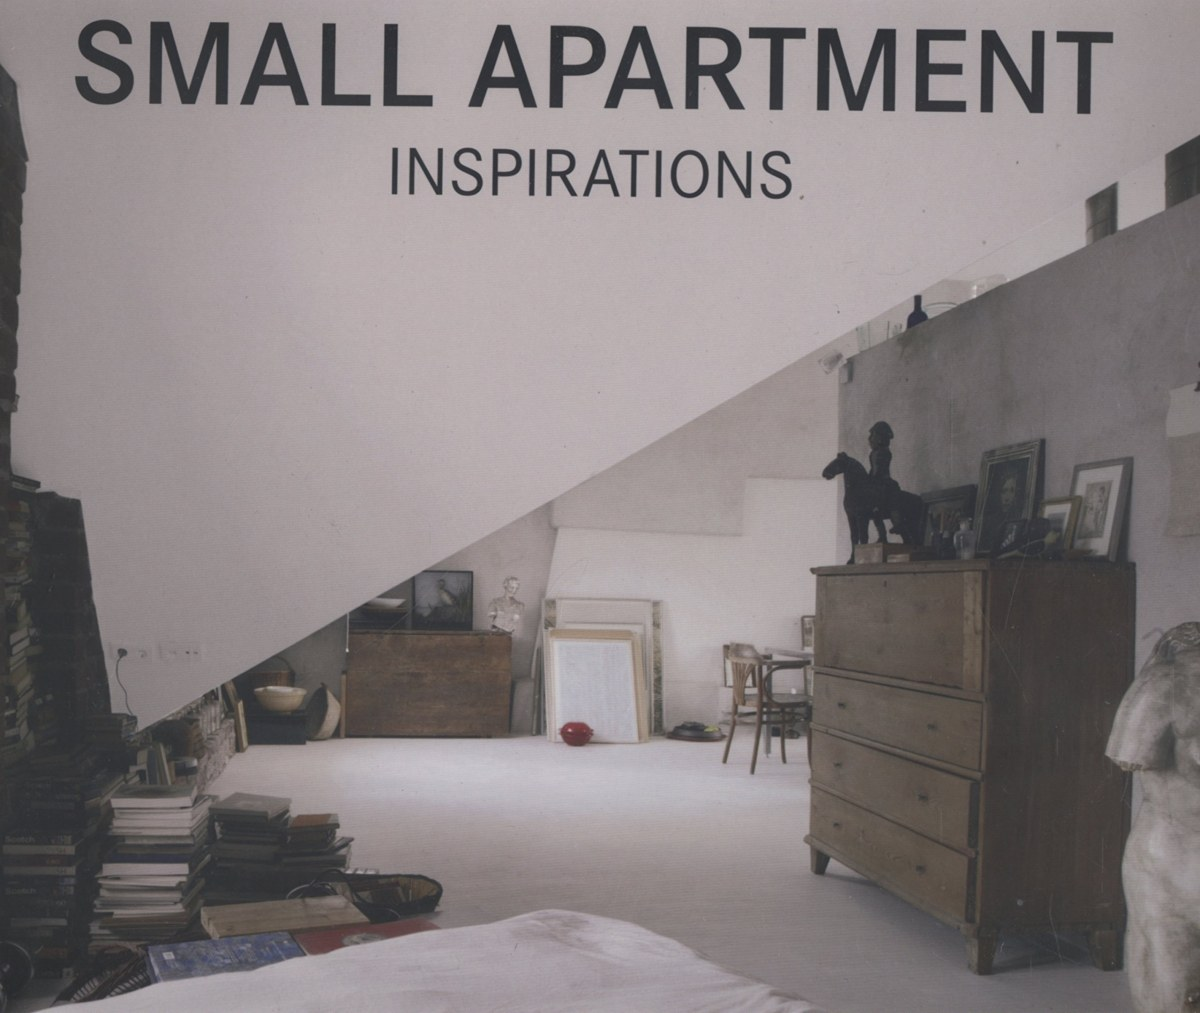 Small apartment - Vv.Aa.